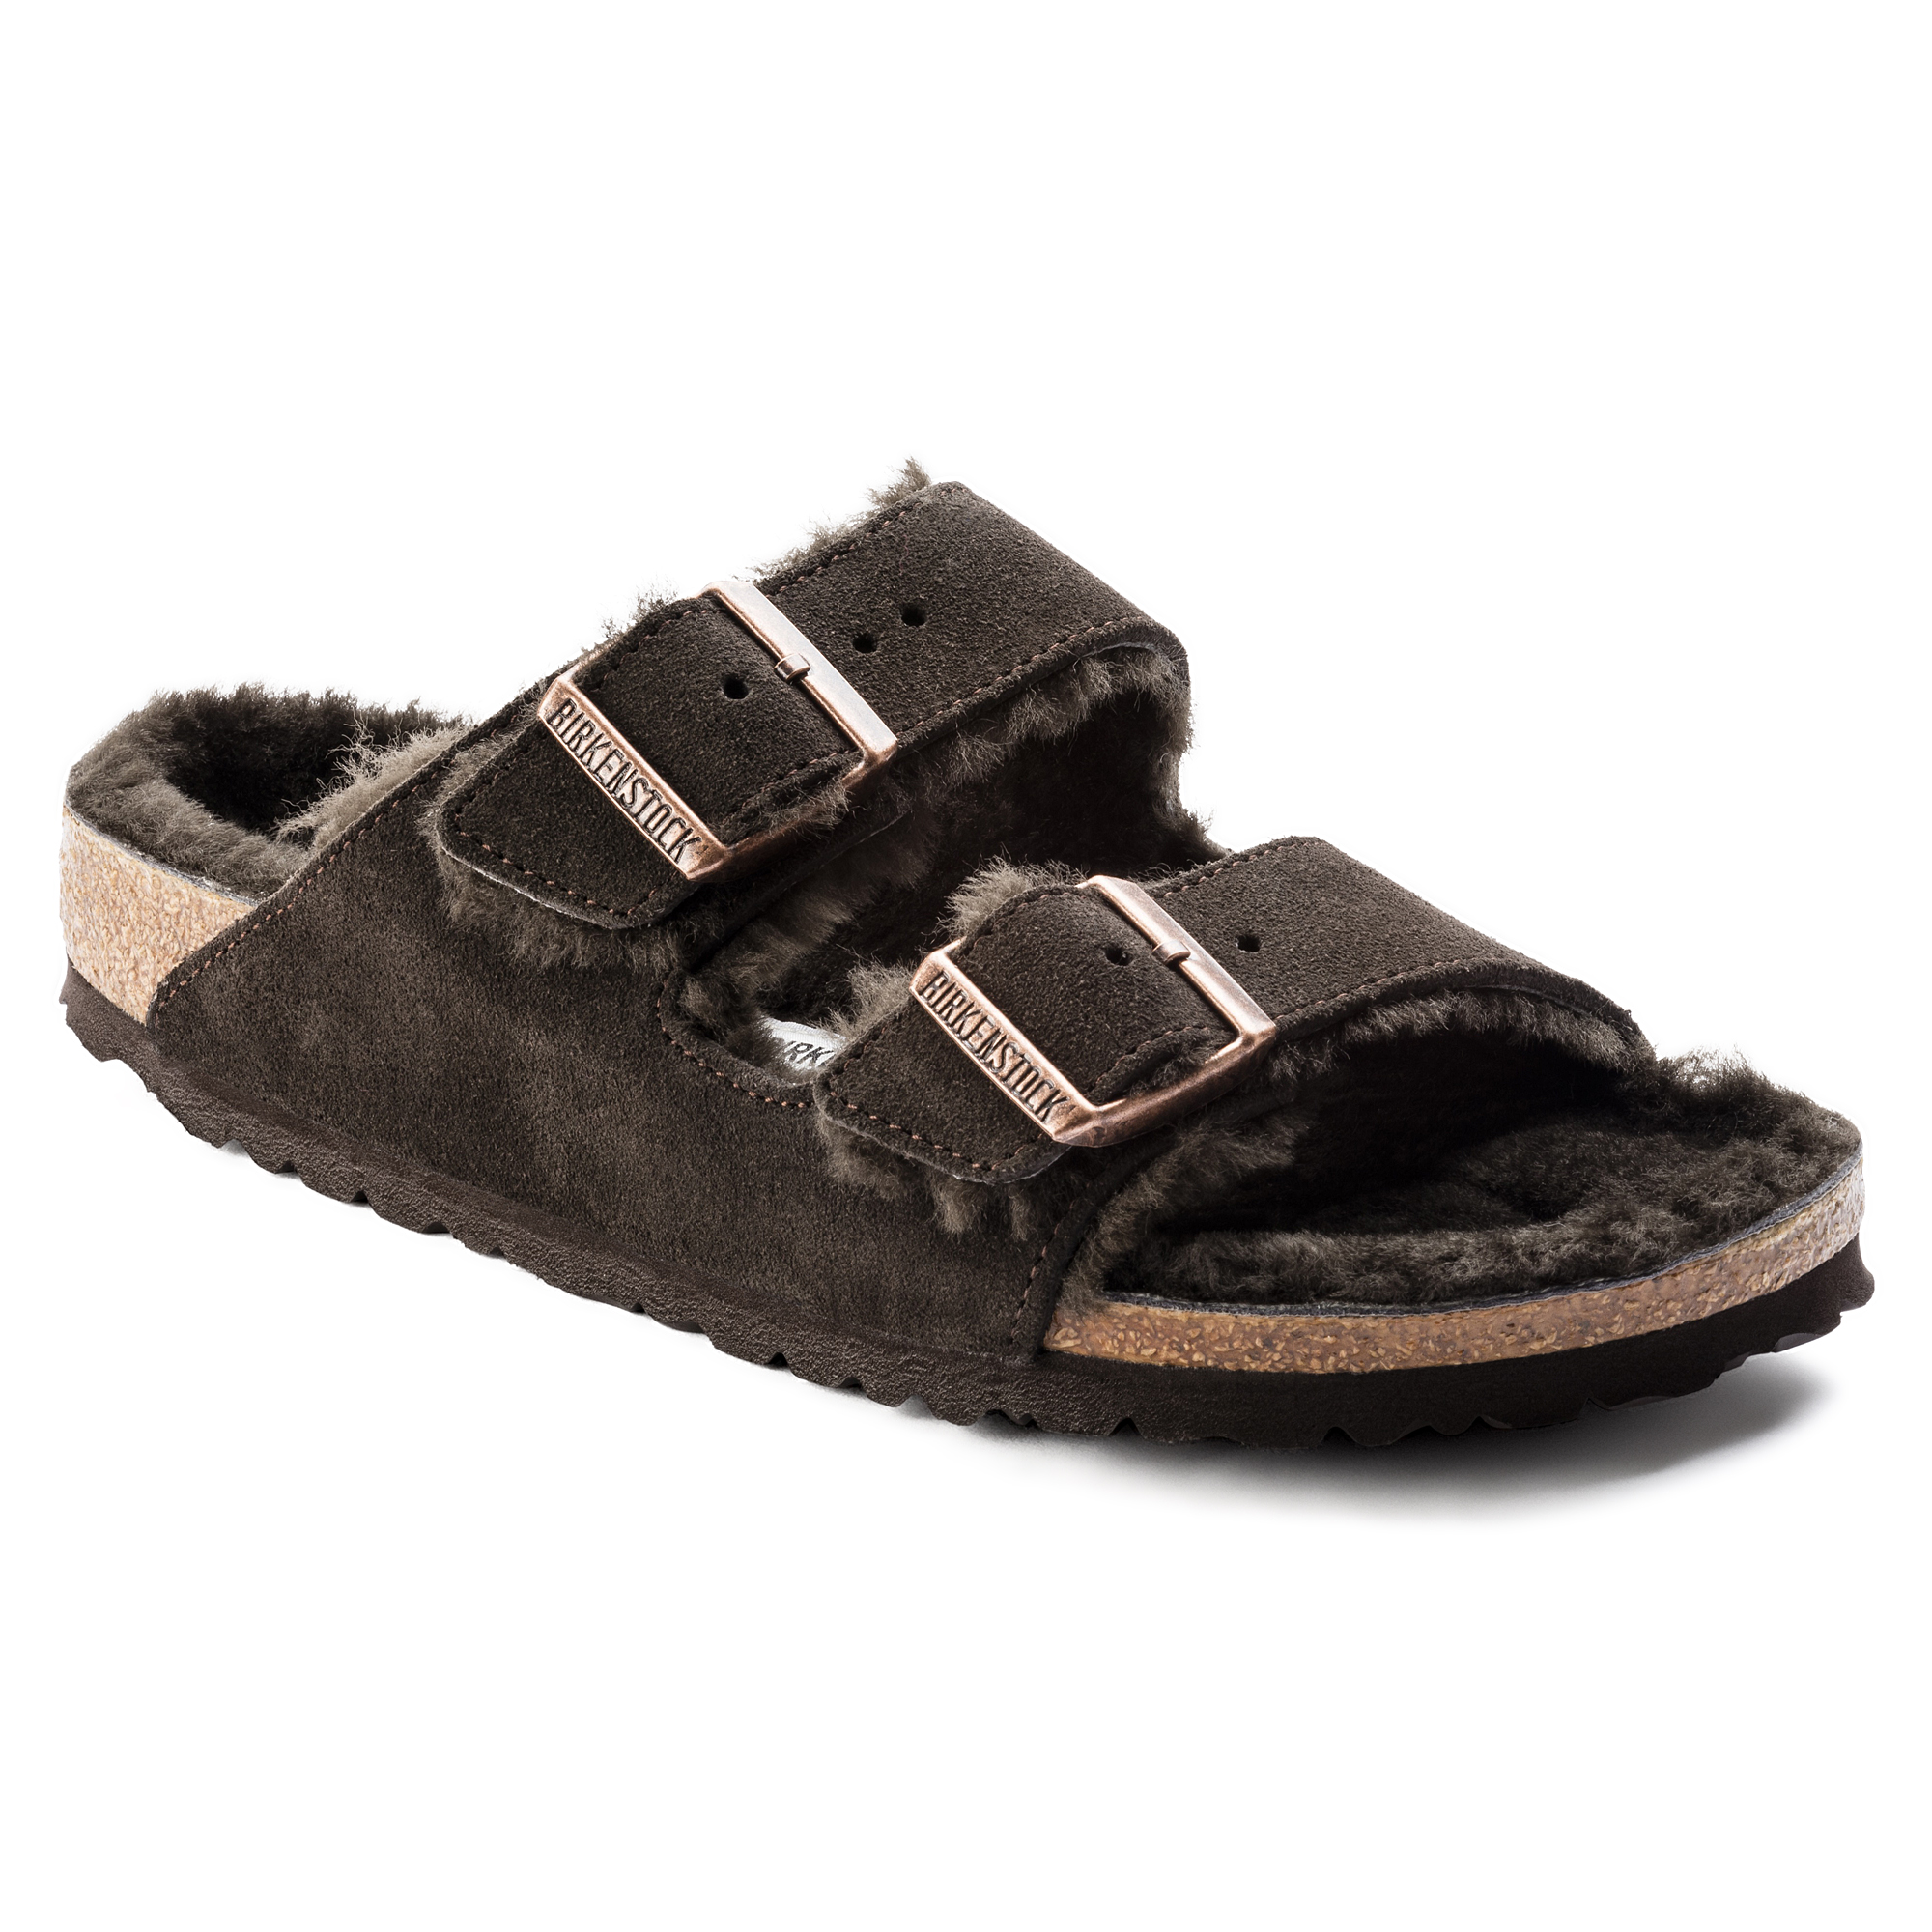 5c4e051458df Arizona Suede Leather Mocha ...